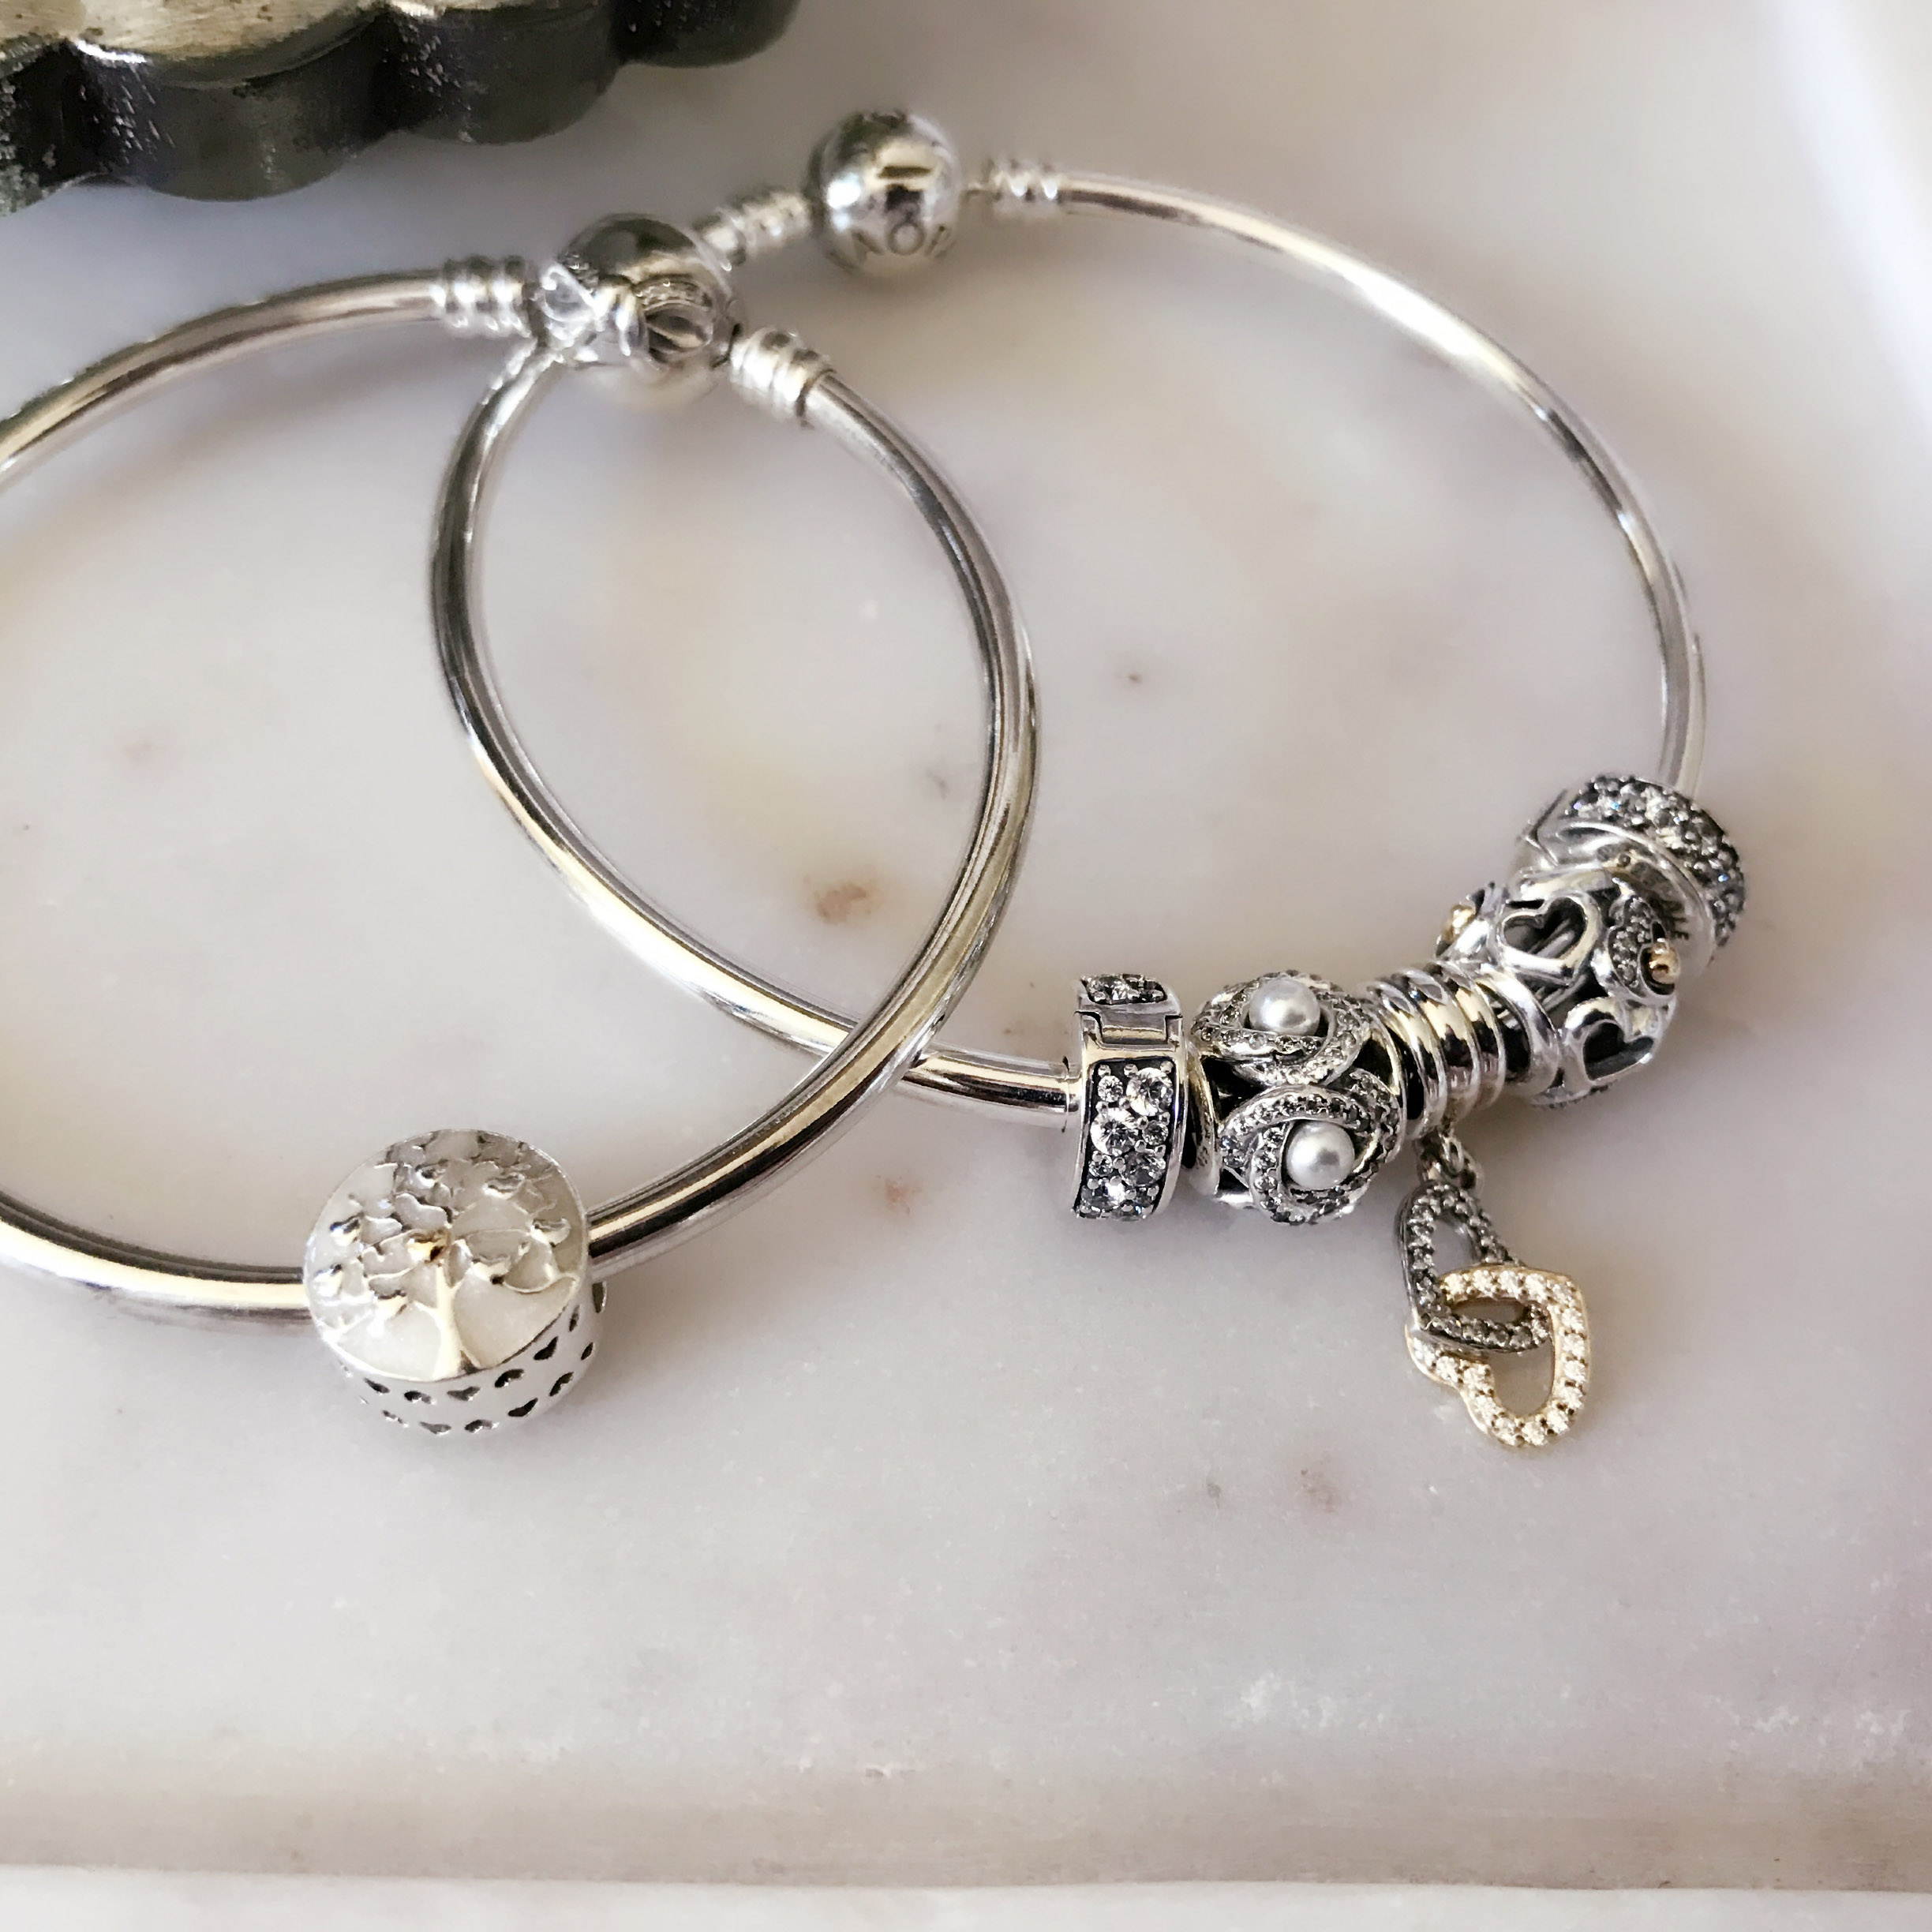 pandora collection bangle preview bangles bracelet addict charms persona peanuts